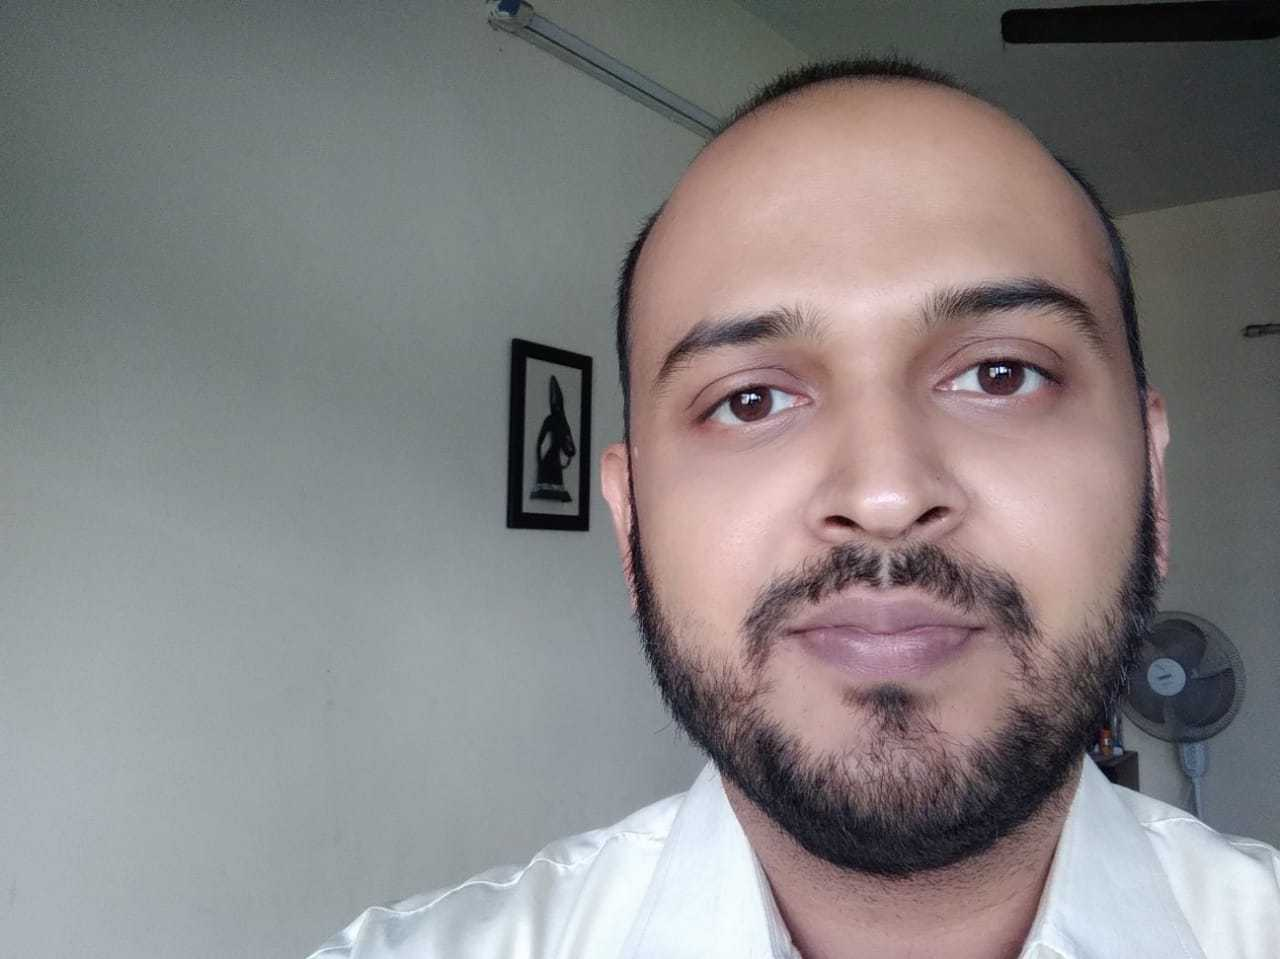 Dhiman Chatterjee (Blood Cancer Caregiver): Positivity is a way of life